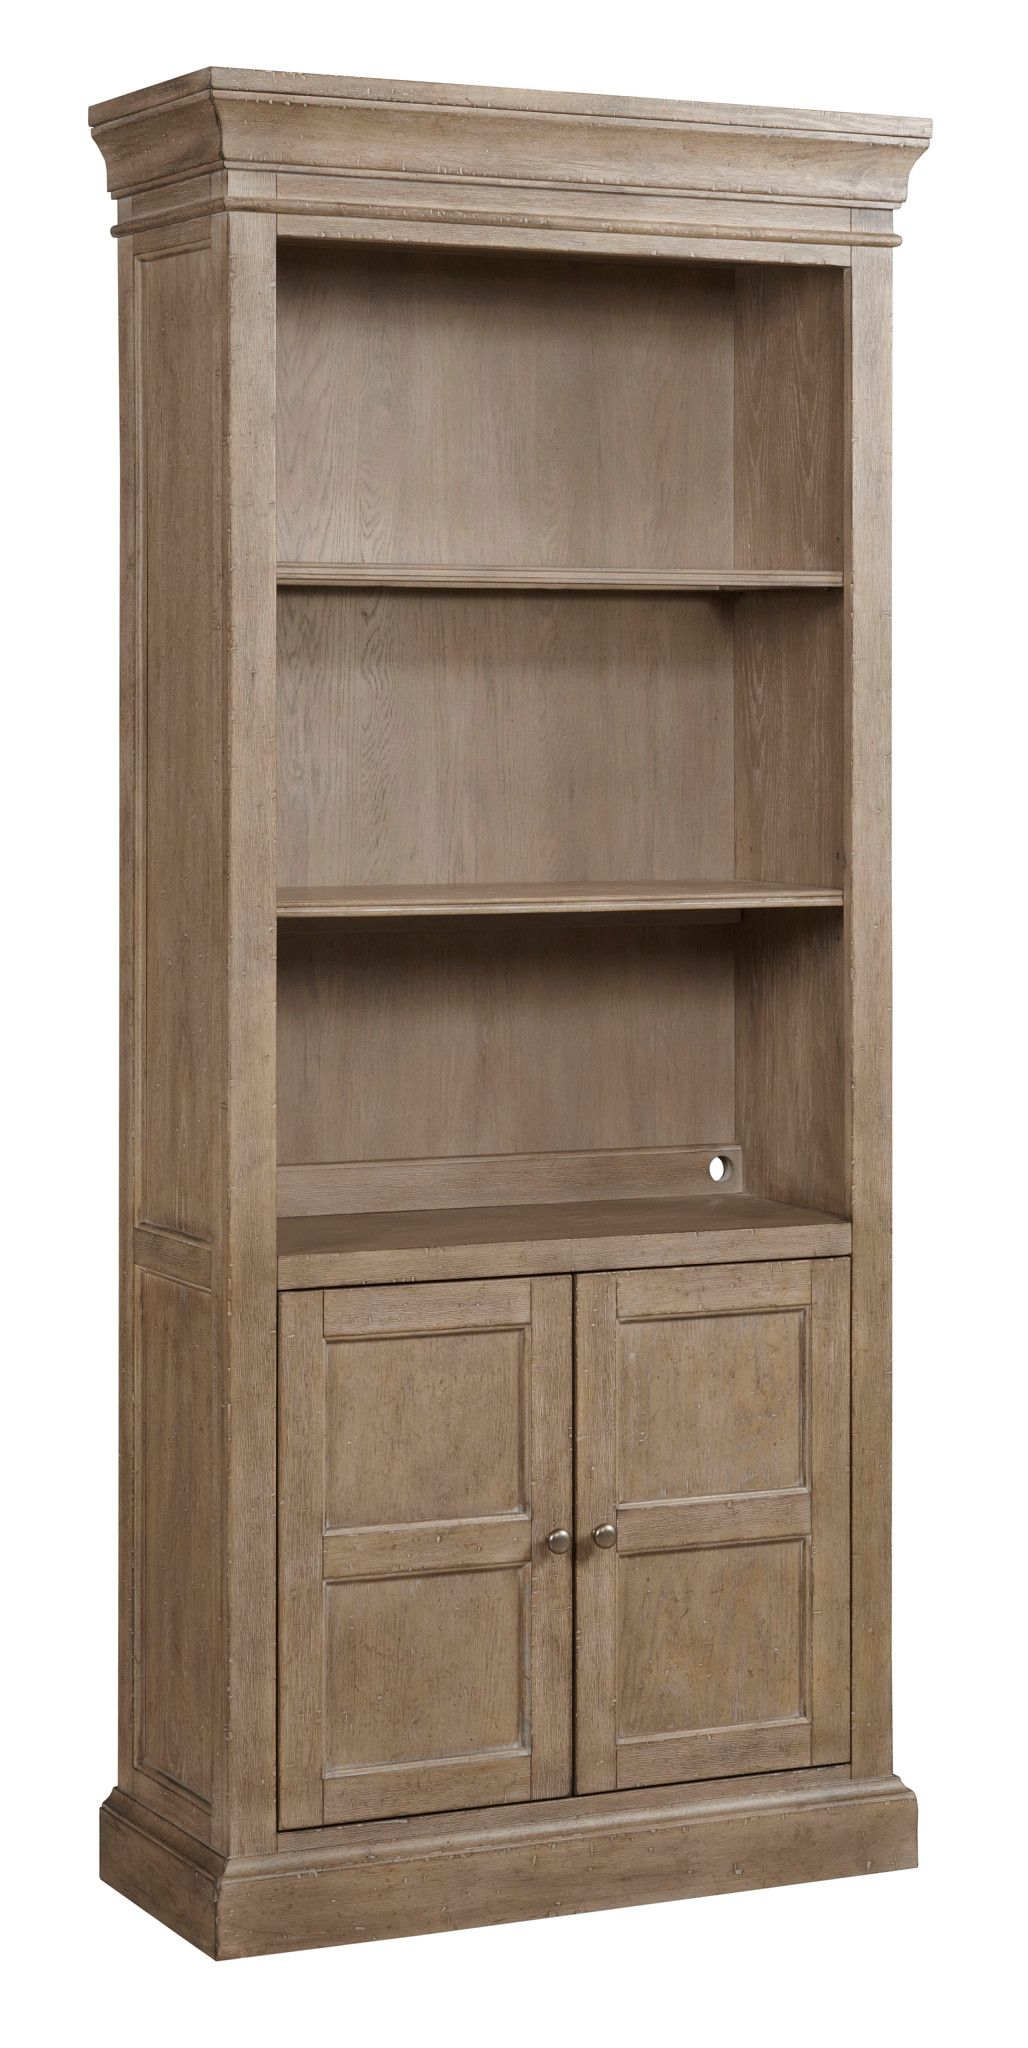 Donelson Bookcase by Table Trends at Sprintz Furniture